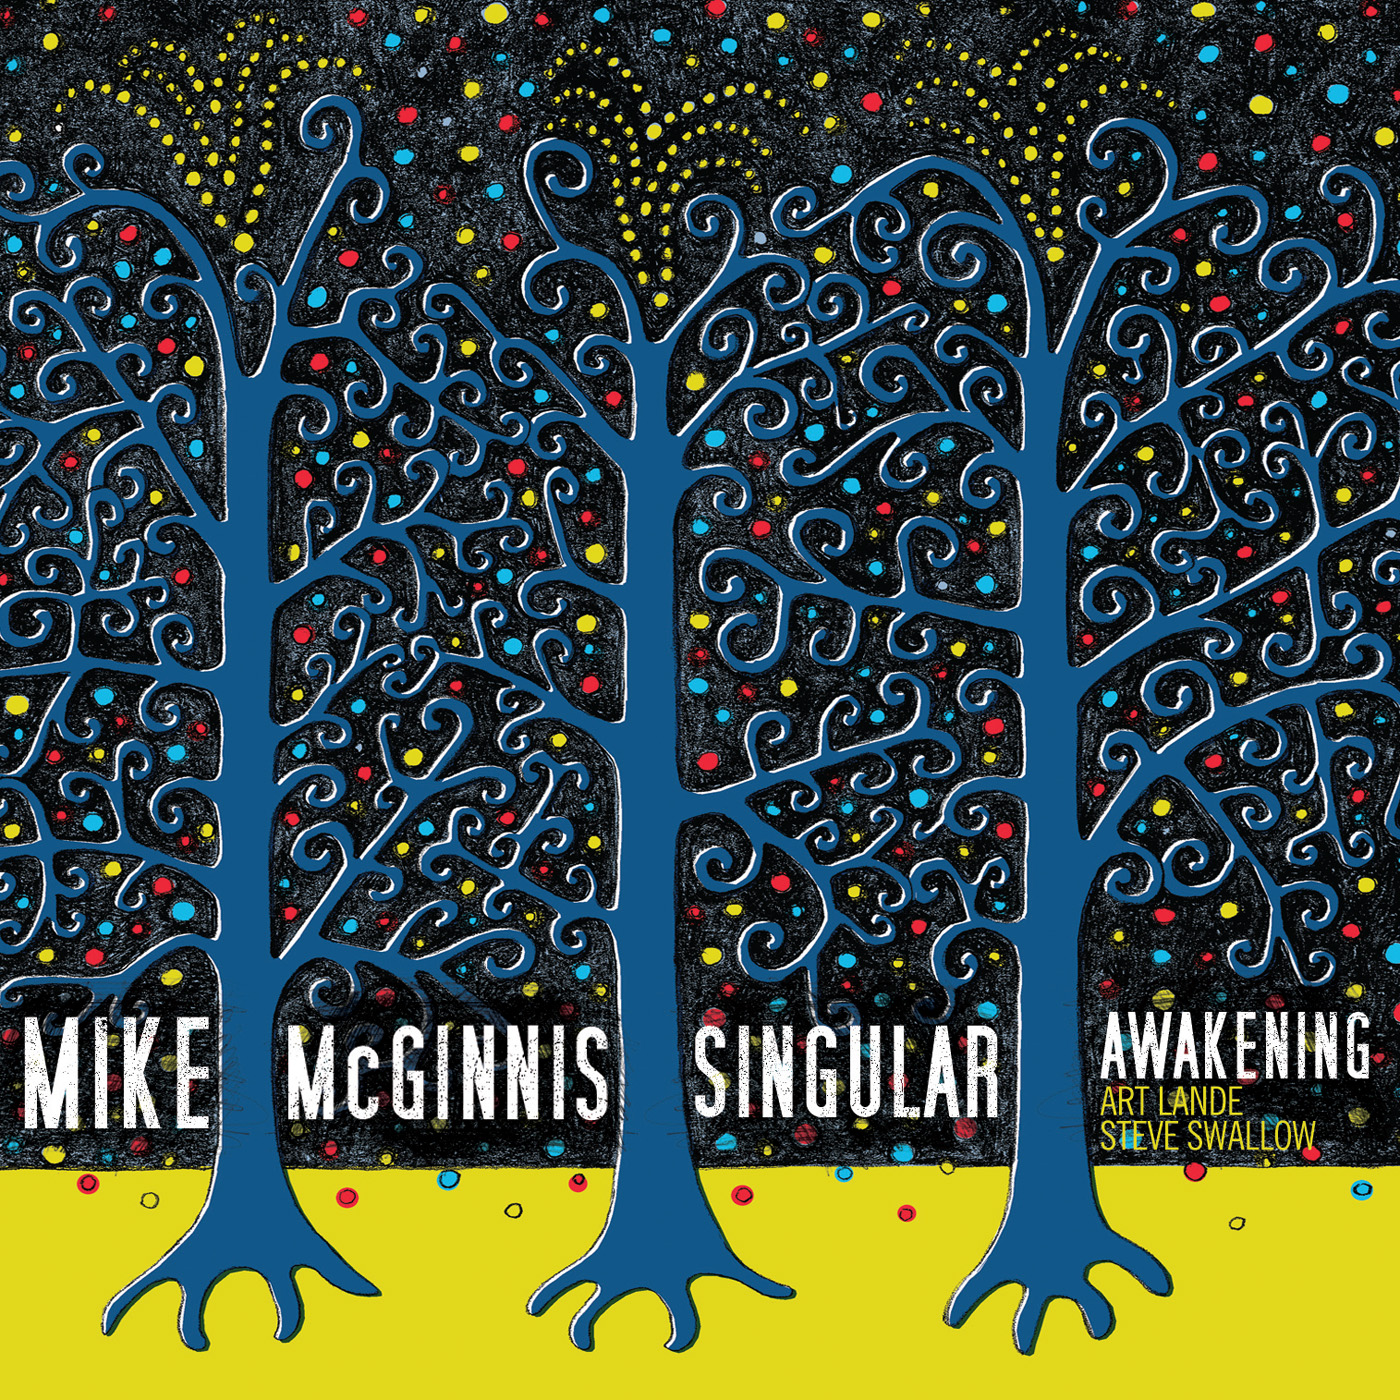 Singular Awakening  by Mike   McGinnis cover